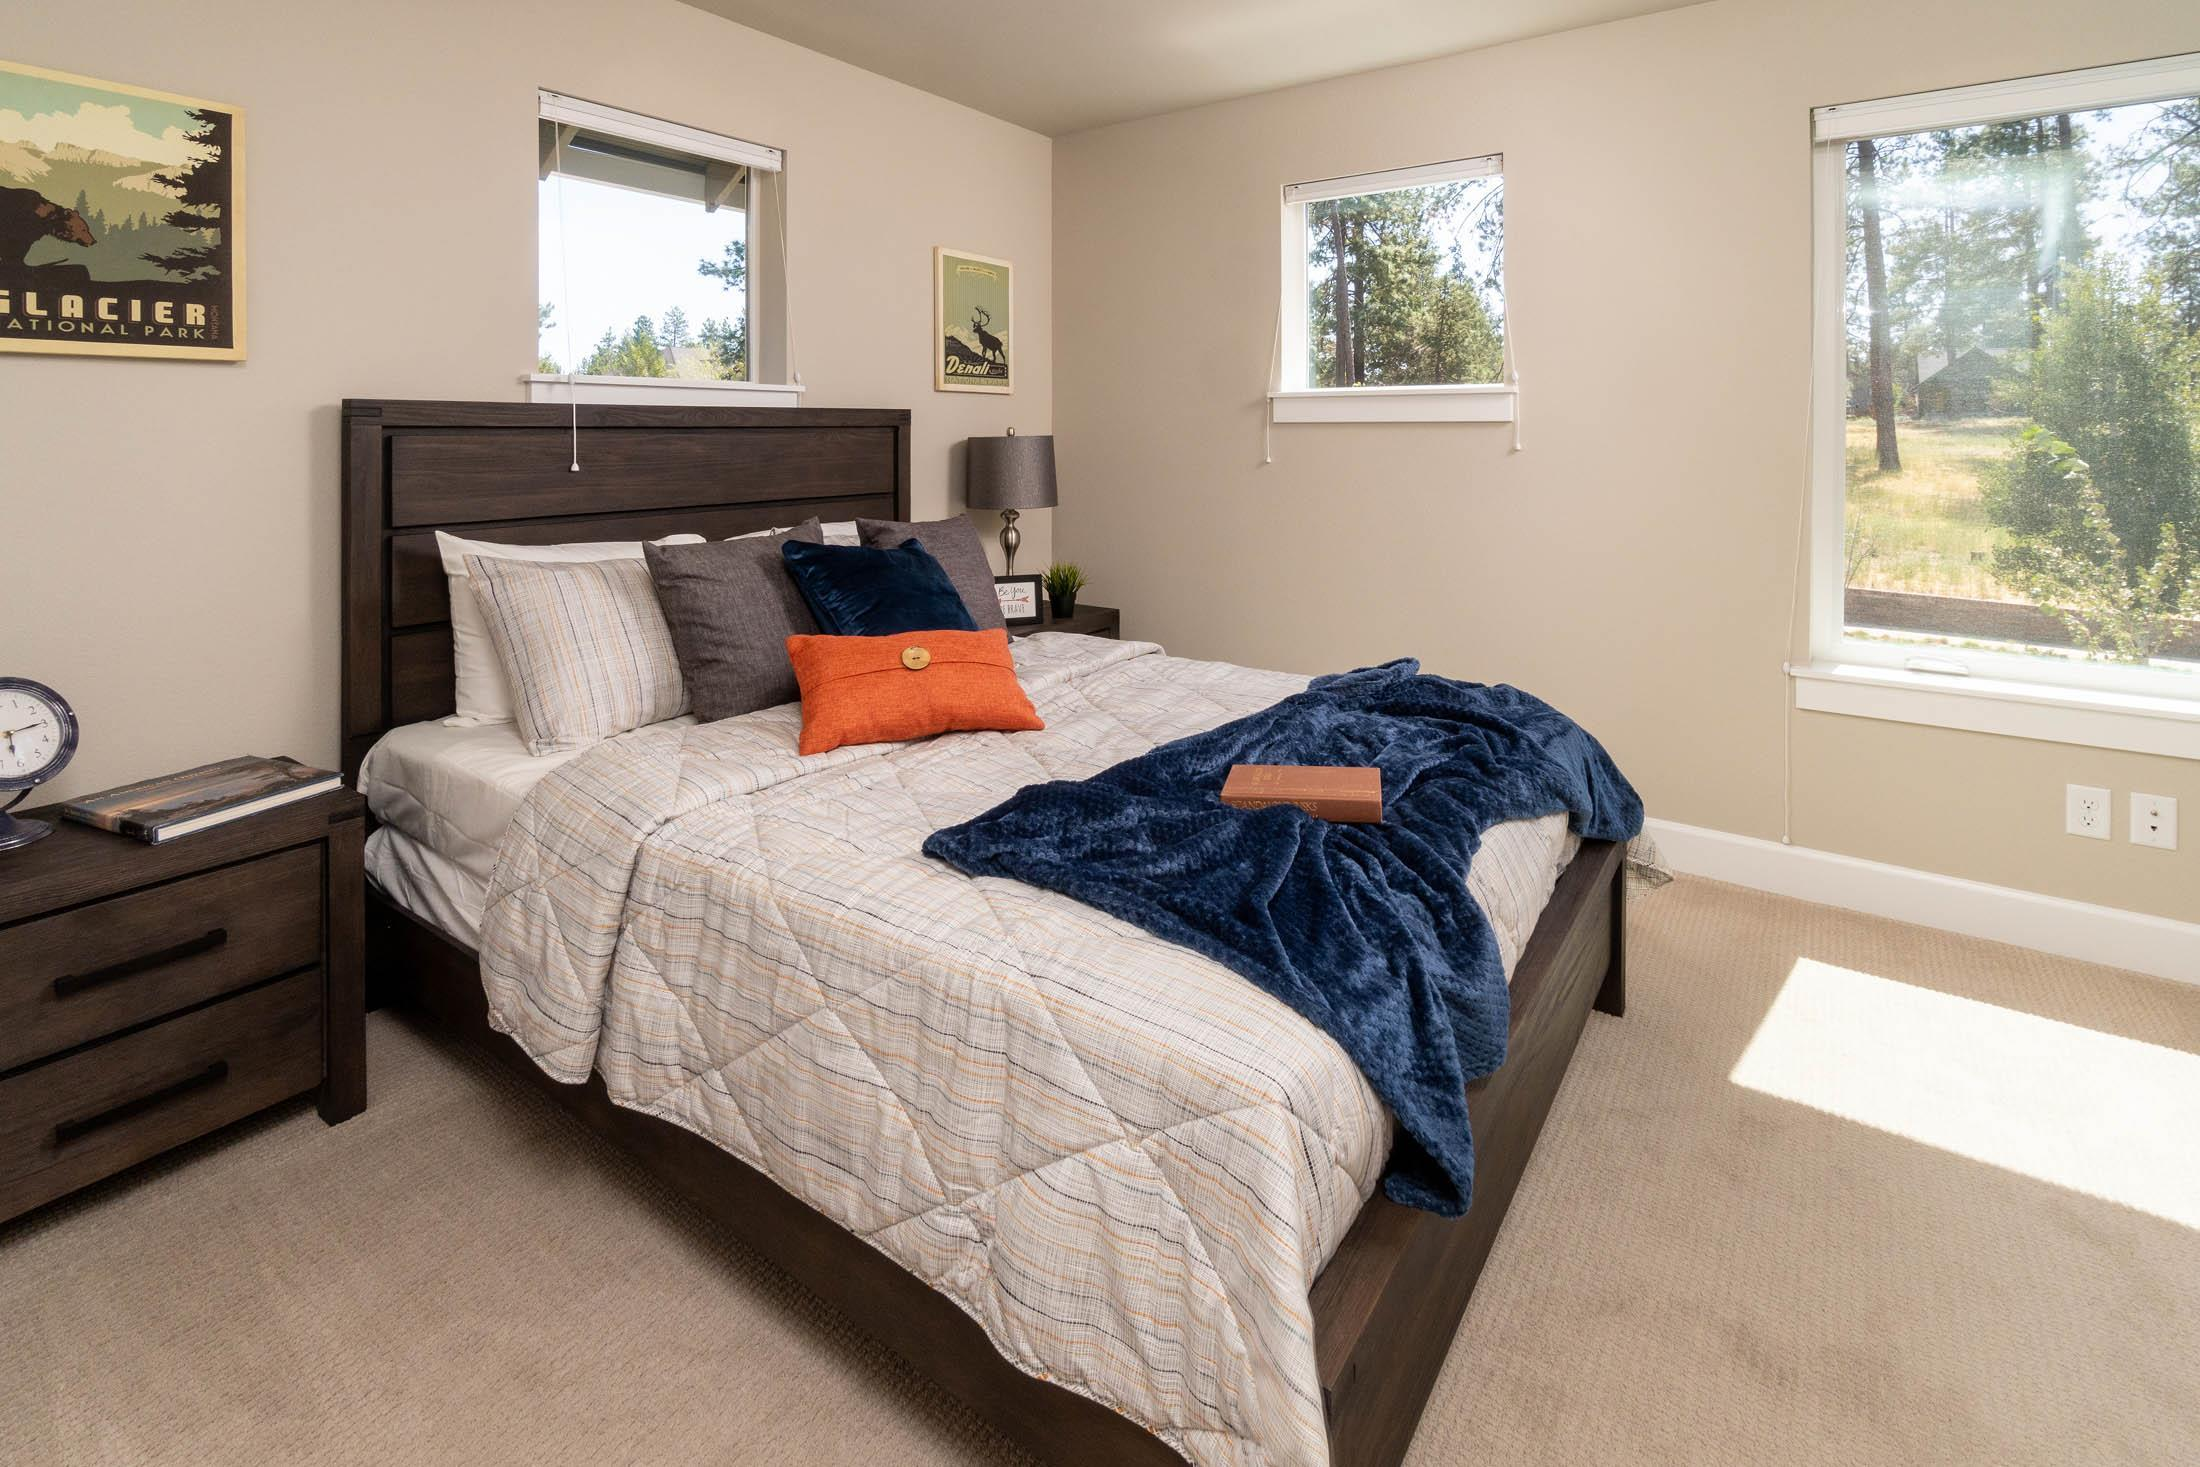 Bedroom featured in The Ponderosa By Woodhill Homes in Central Oregon, OR